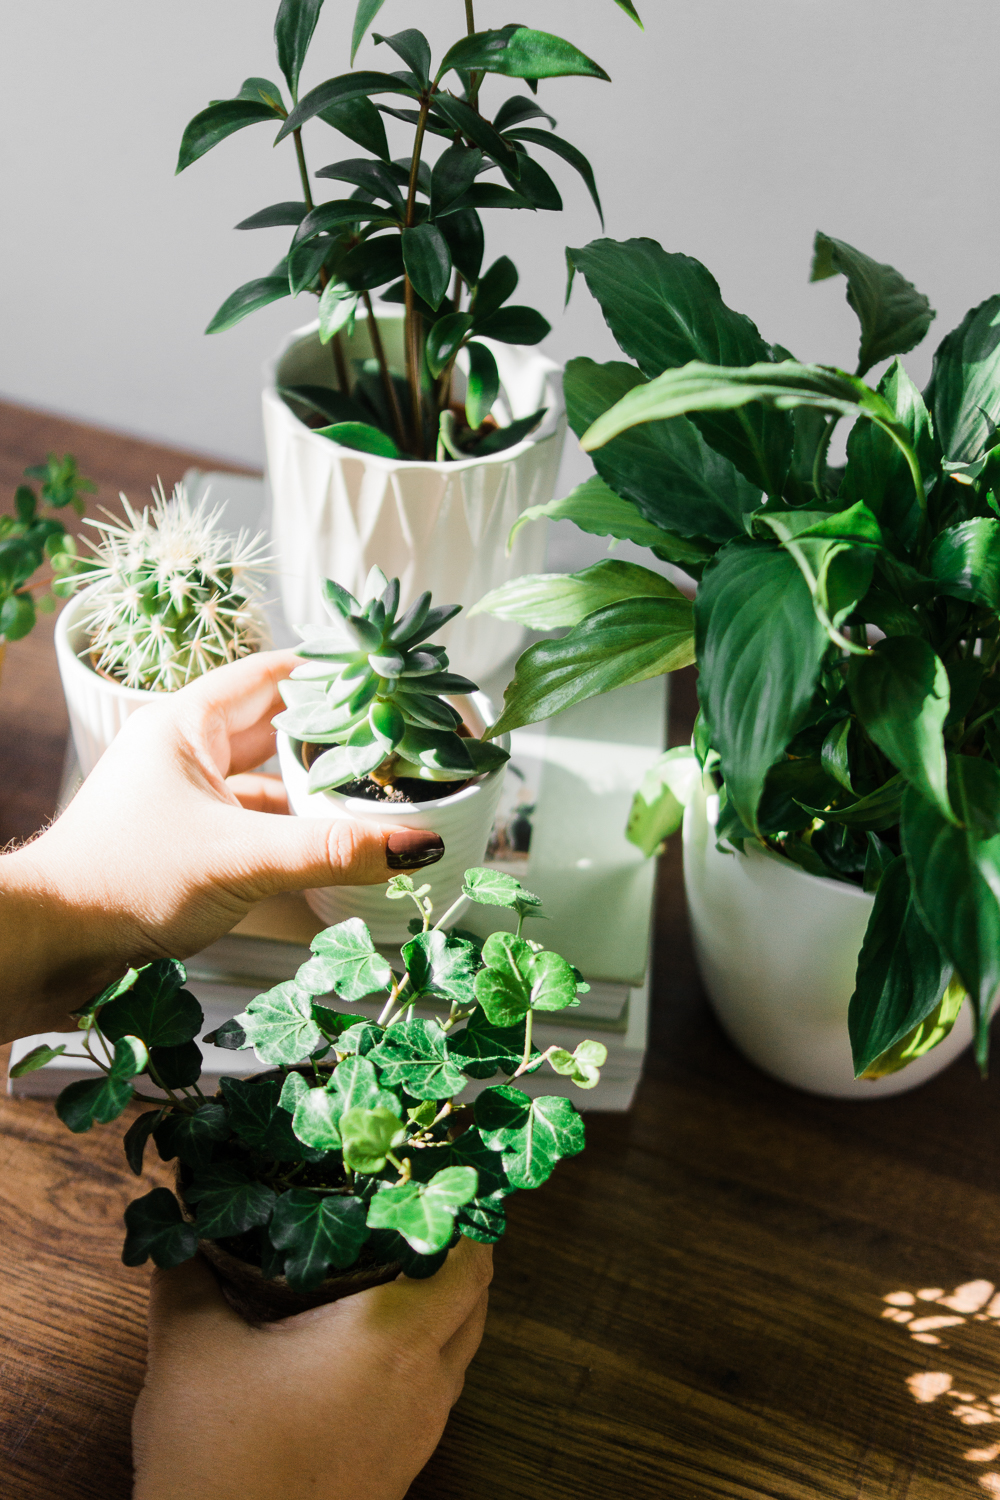 Beginner's-guide-to-houseplants-Barely-There-Beauty-blog-lifestyle-photography